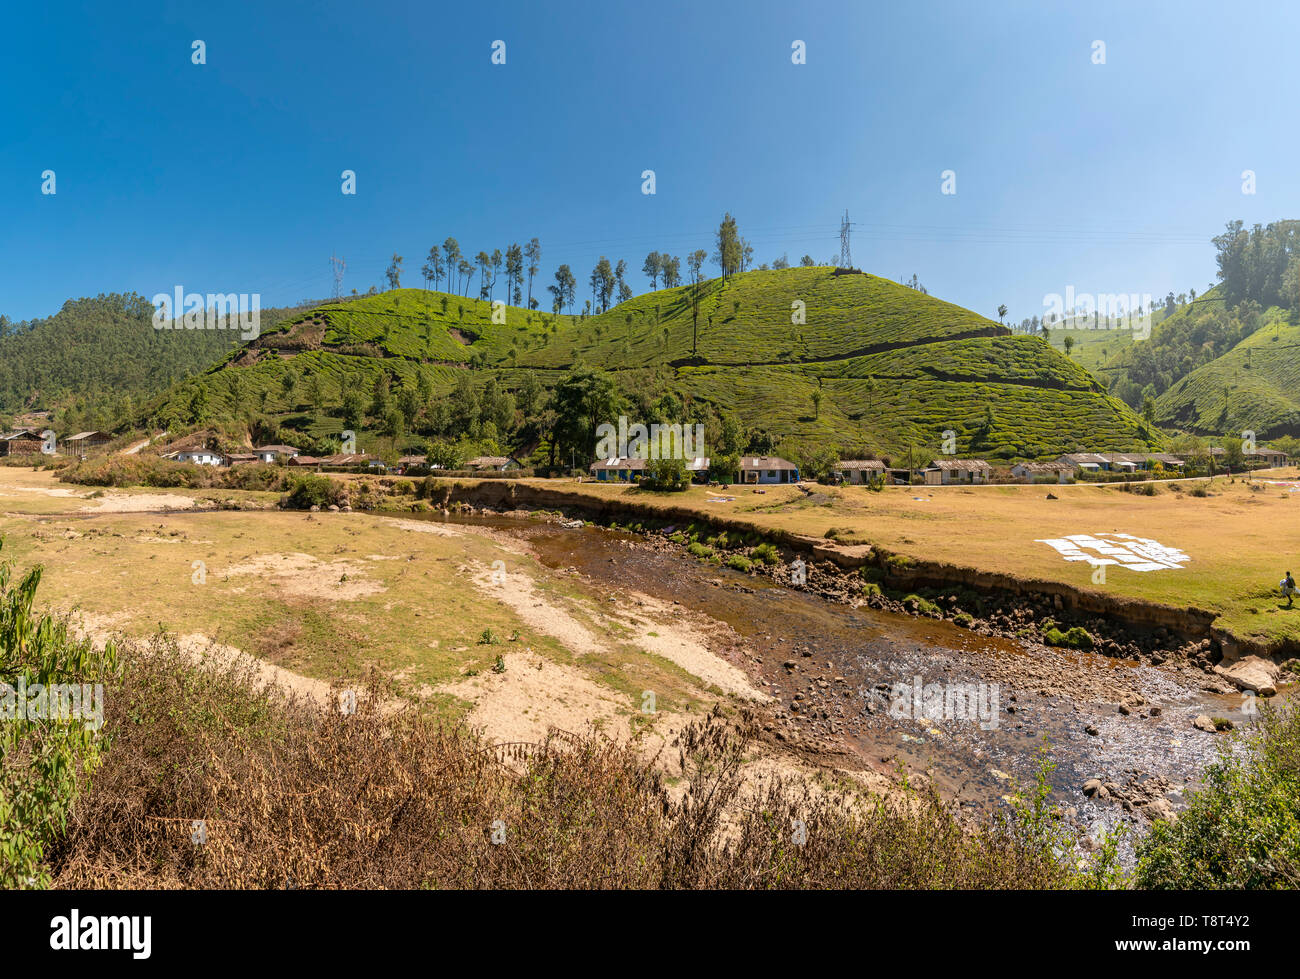 Horizontal panoramic view of a row of hillside cottages infront of a river in Munnar, India. Stock Photo